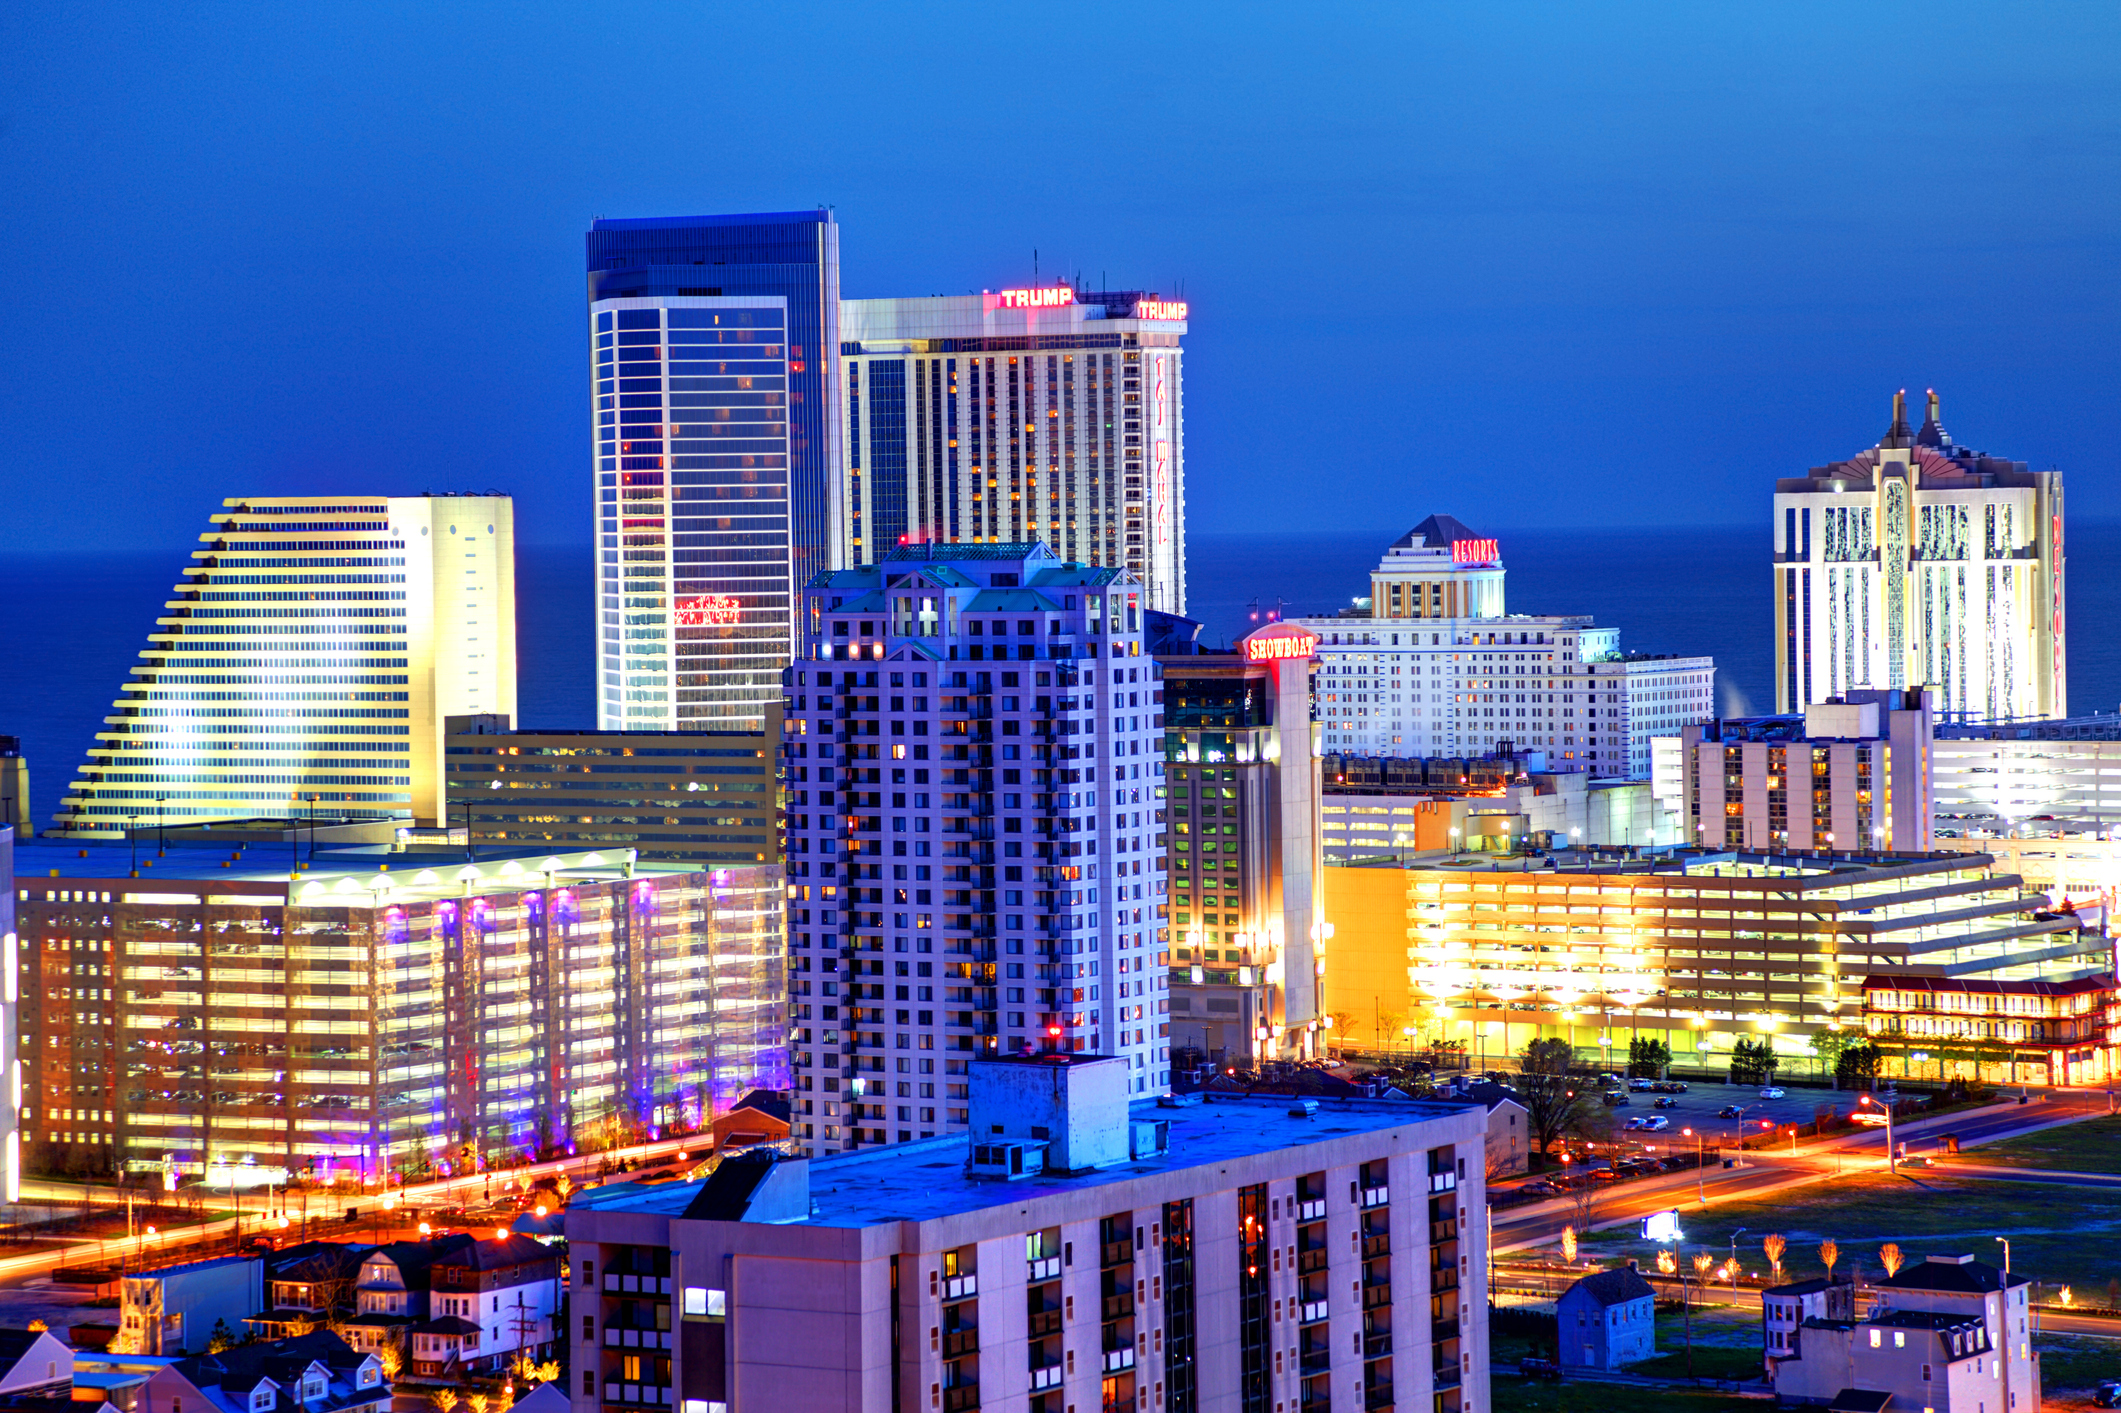 Atlantic City located on the Jersey shore is a resort city on Absecon Island in Atlantic County, New Jersey. Atlantic City is known for its two mile long boardwalk, gambling casinos, great nightlife, beautiful beaches, and the Miss America Pageant